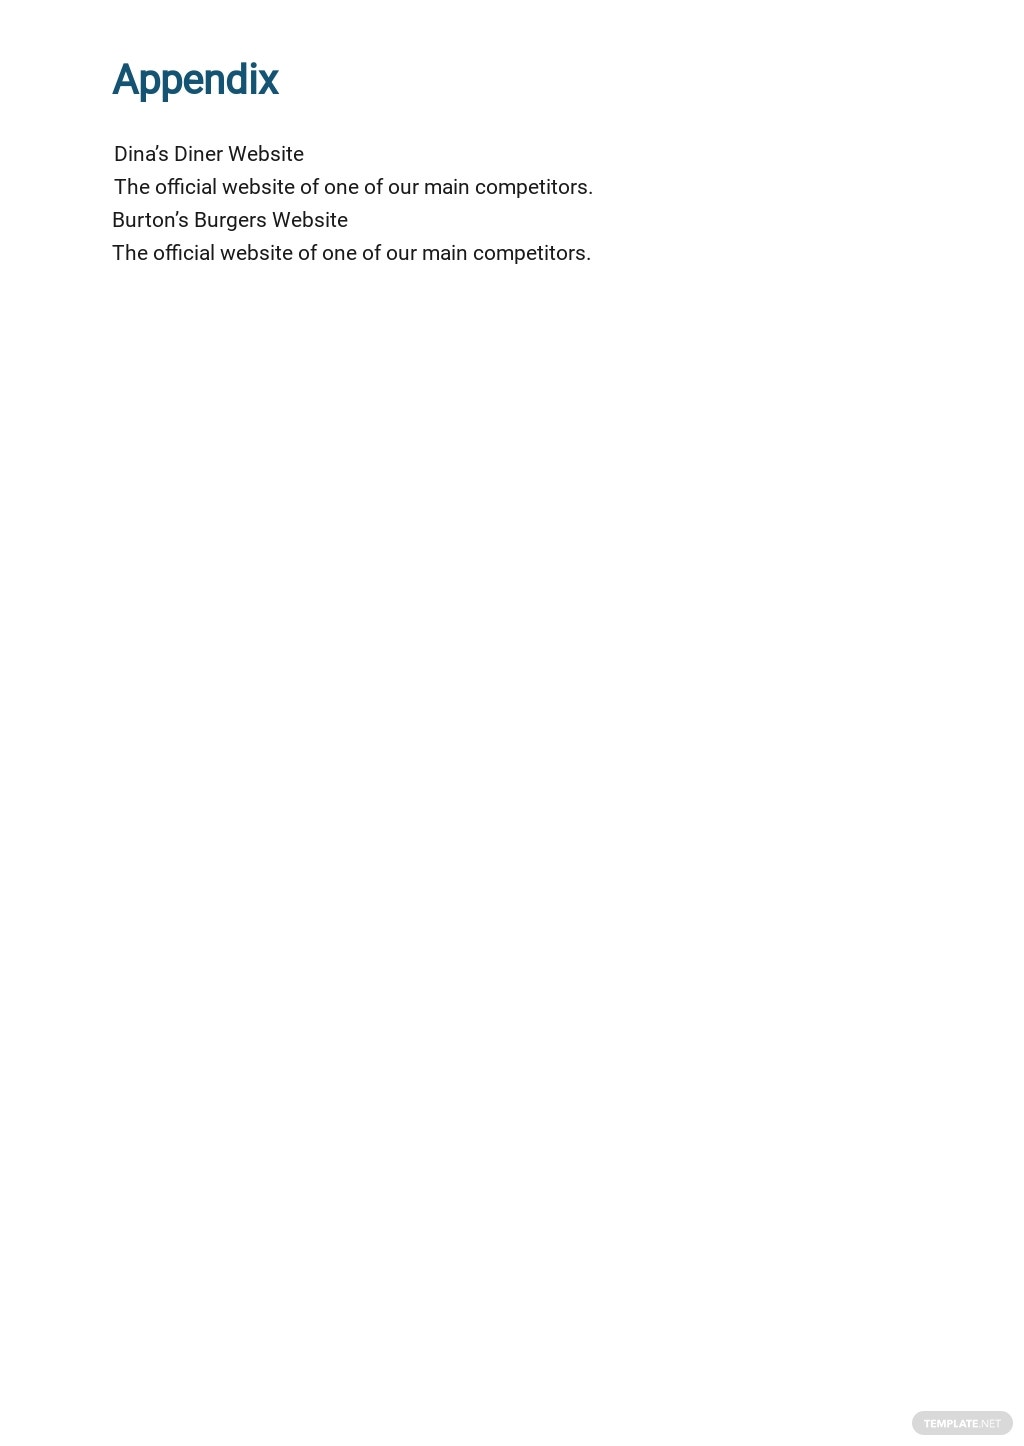 Free General Contracting Company Business Plan Template 10.jpe